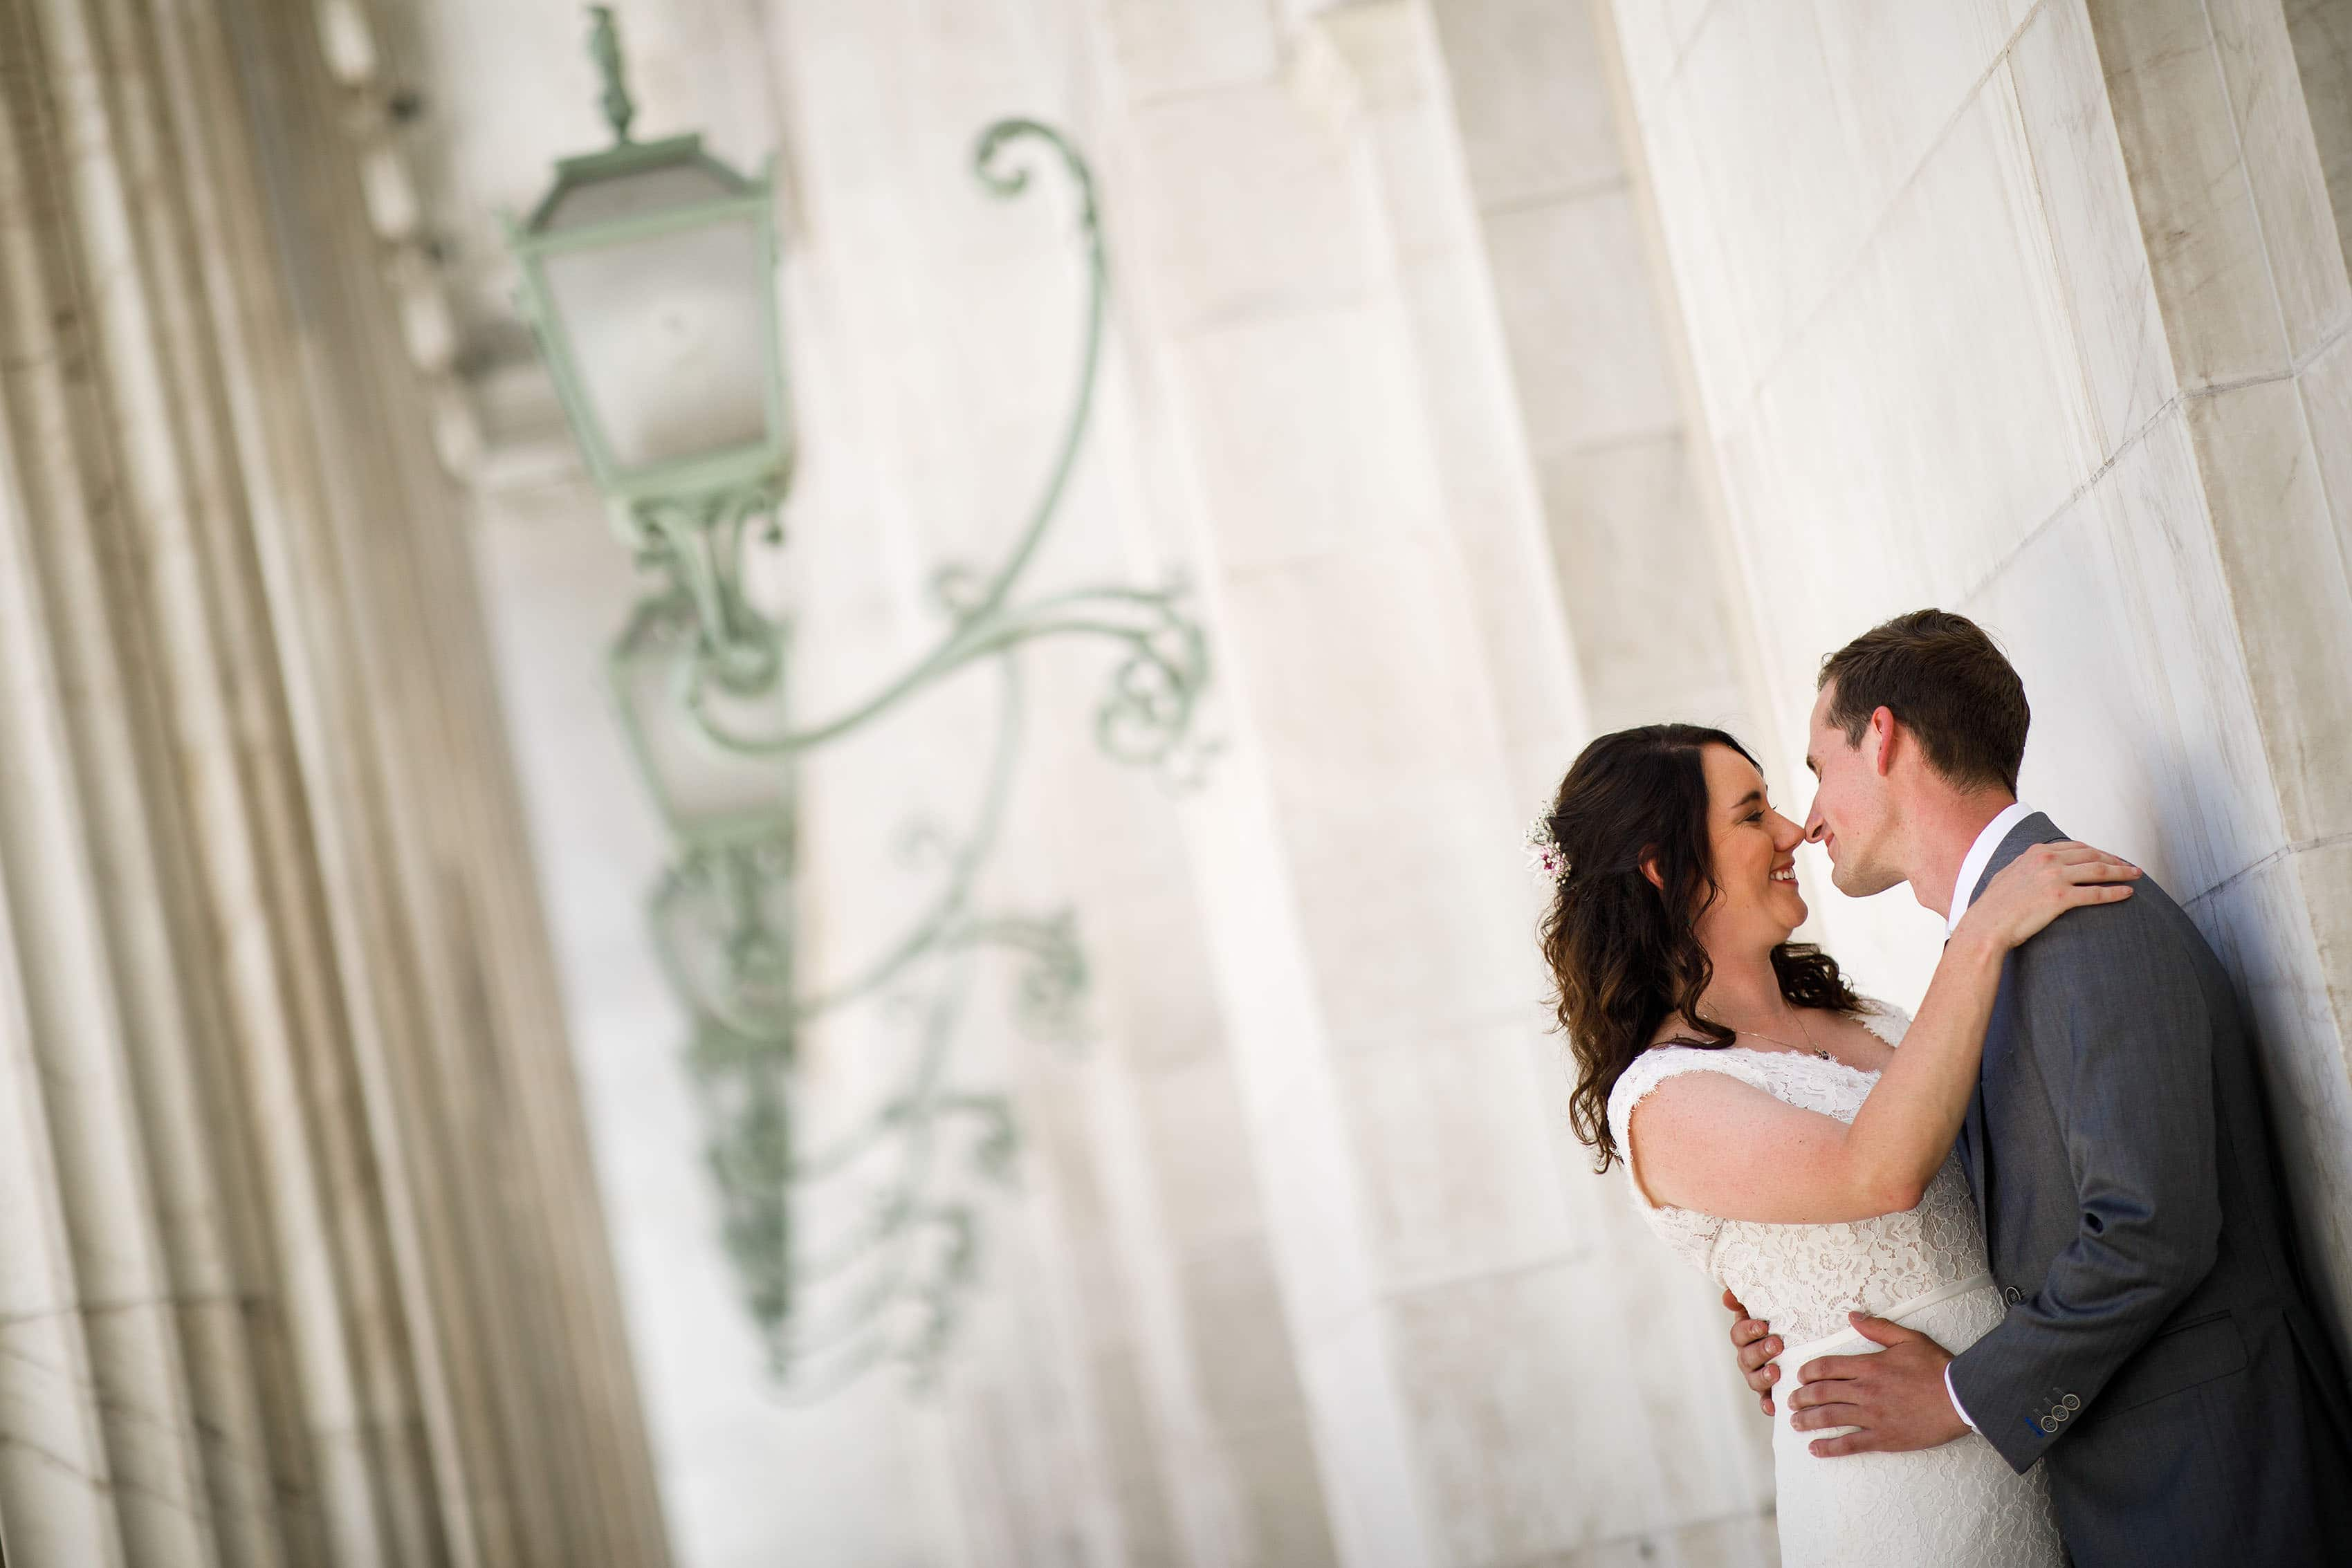 Meaghan and Matthew share a moment at the Tenth Circuit Court of Appeals in Denver on their wedding day